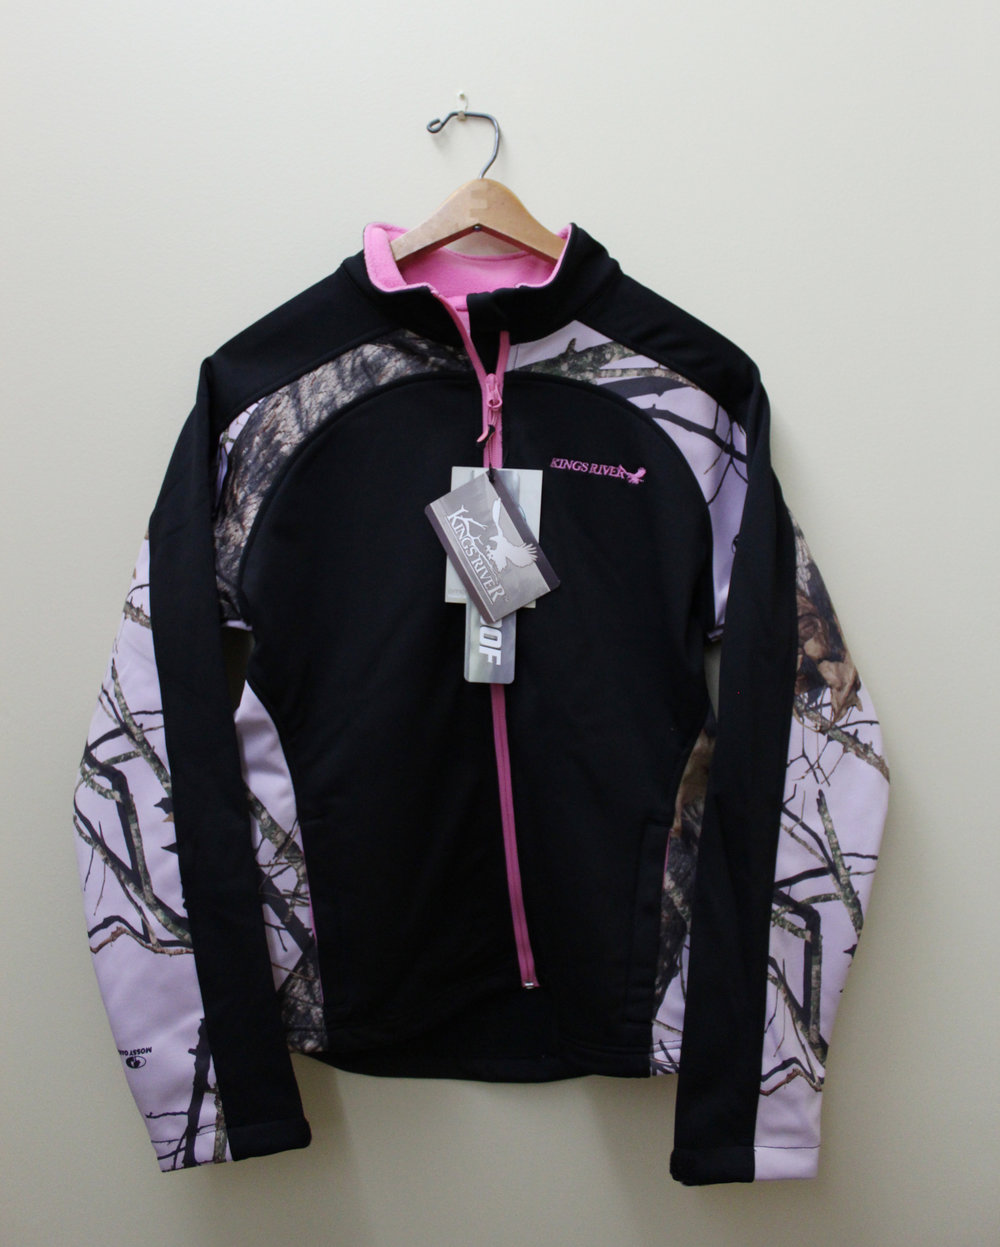 Mahco Inc. - Women's Performance Softshell Jacket with pink camo accents Small Jacket ($70) AND URGE Juice Gift Certificate $60